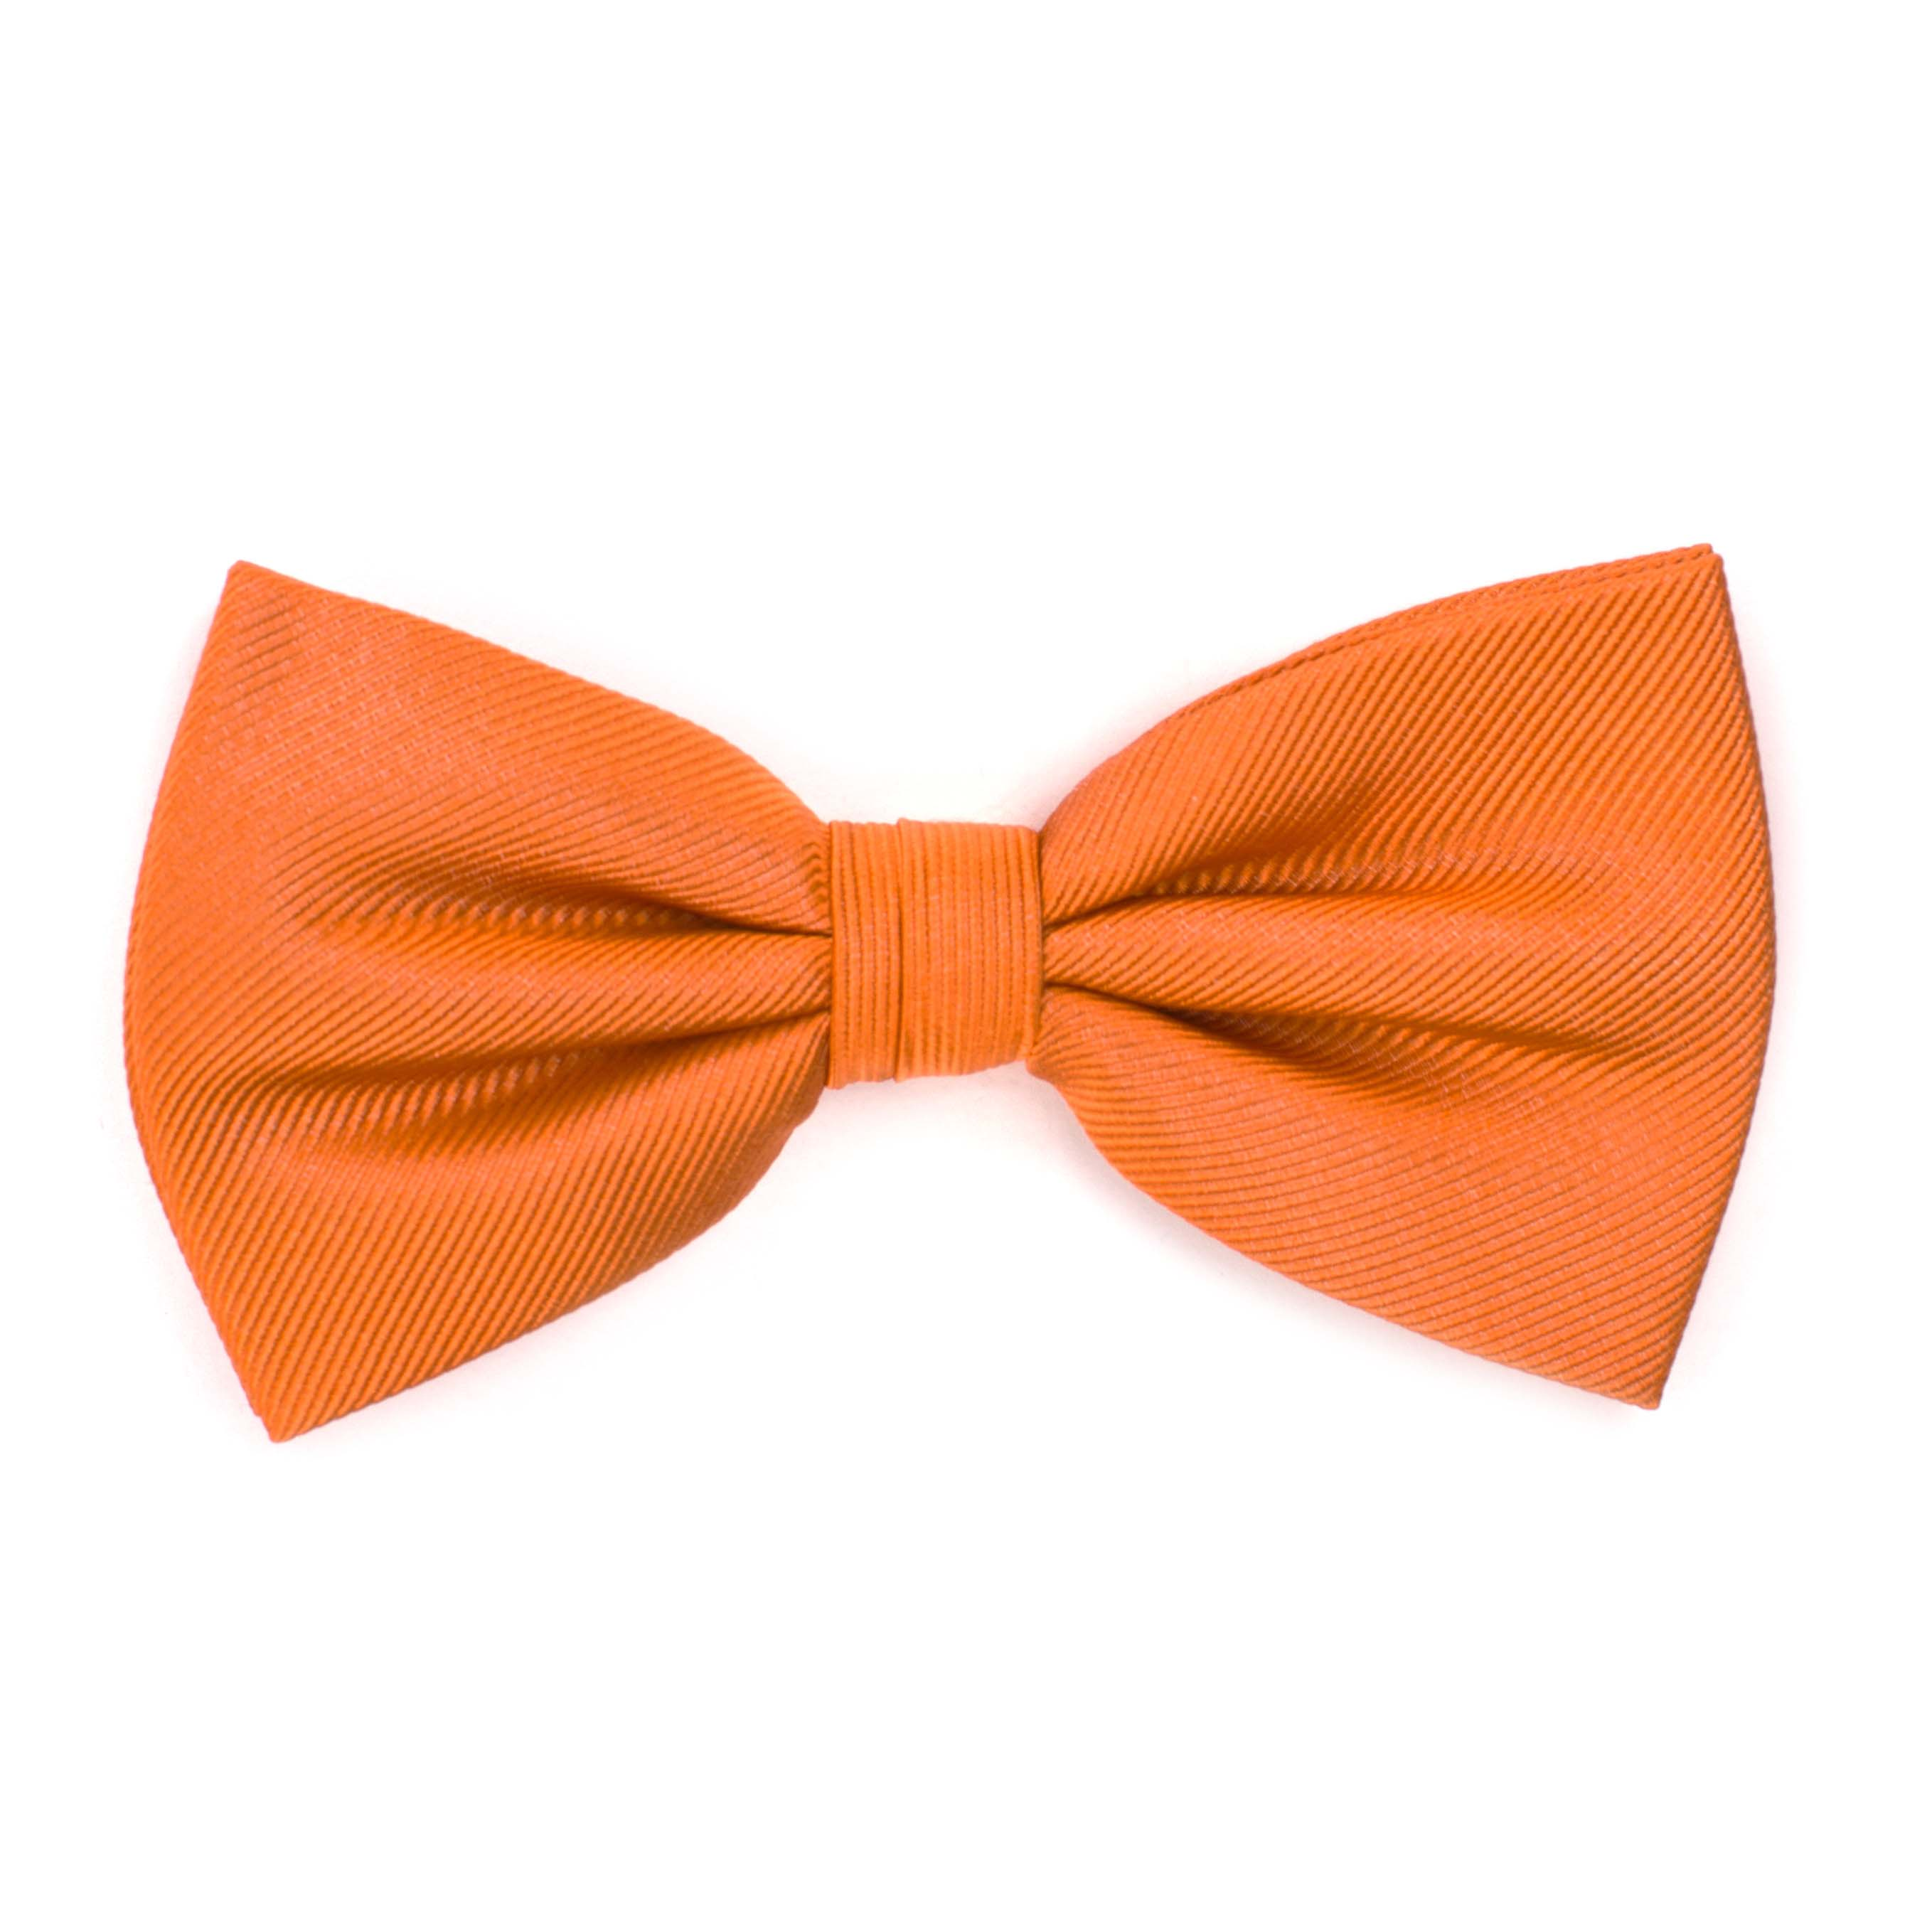 Bow tie classic ribbed orange